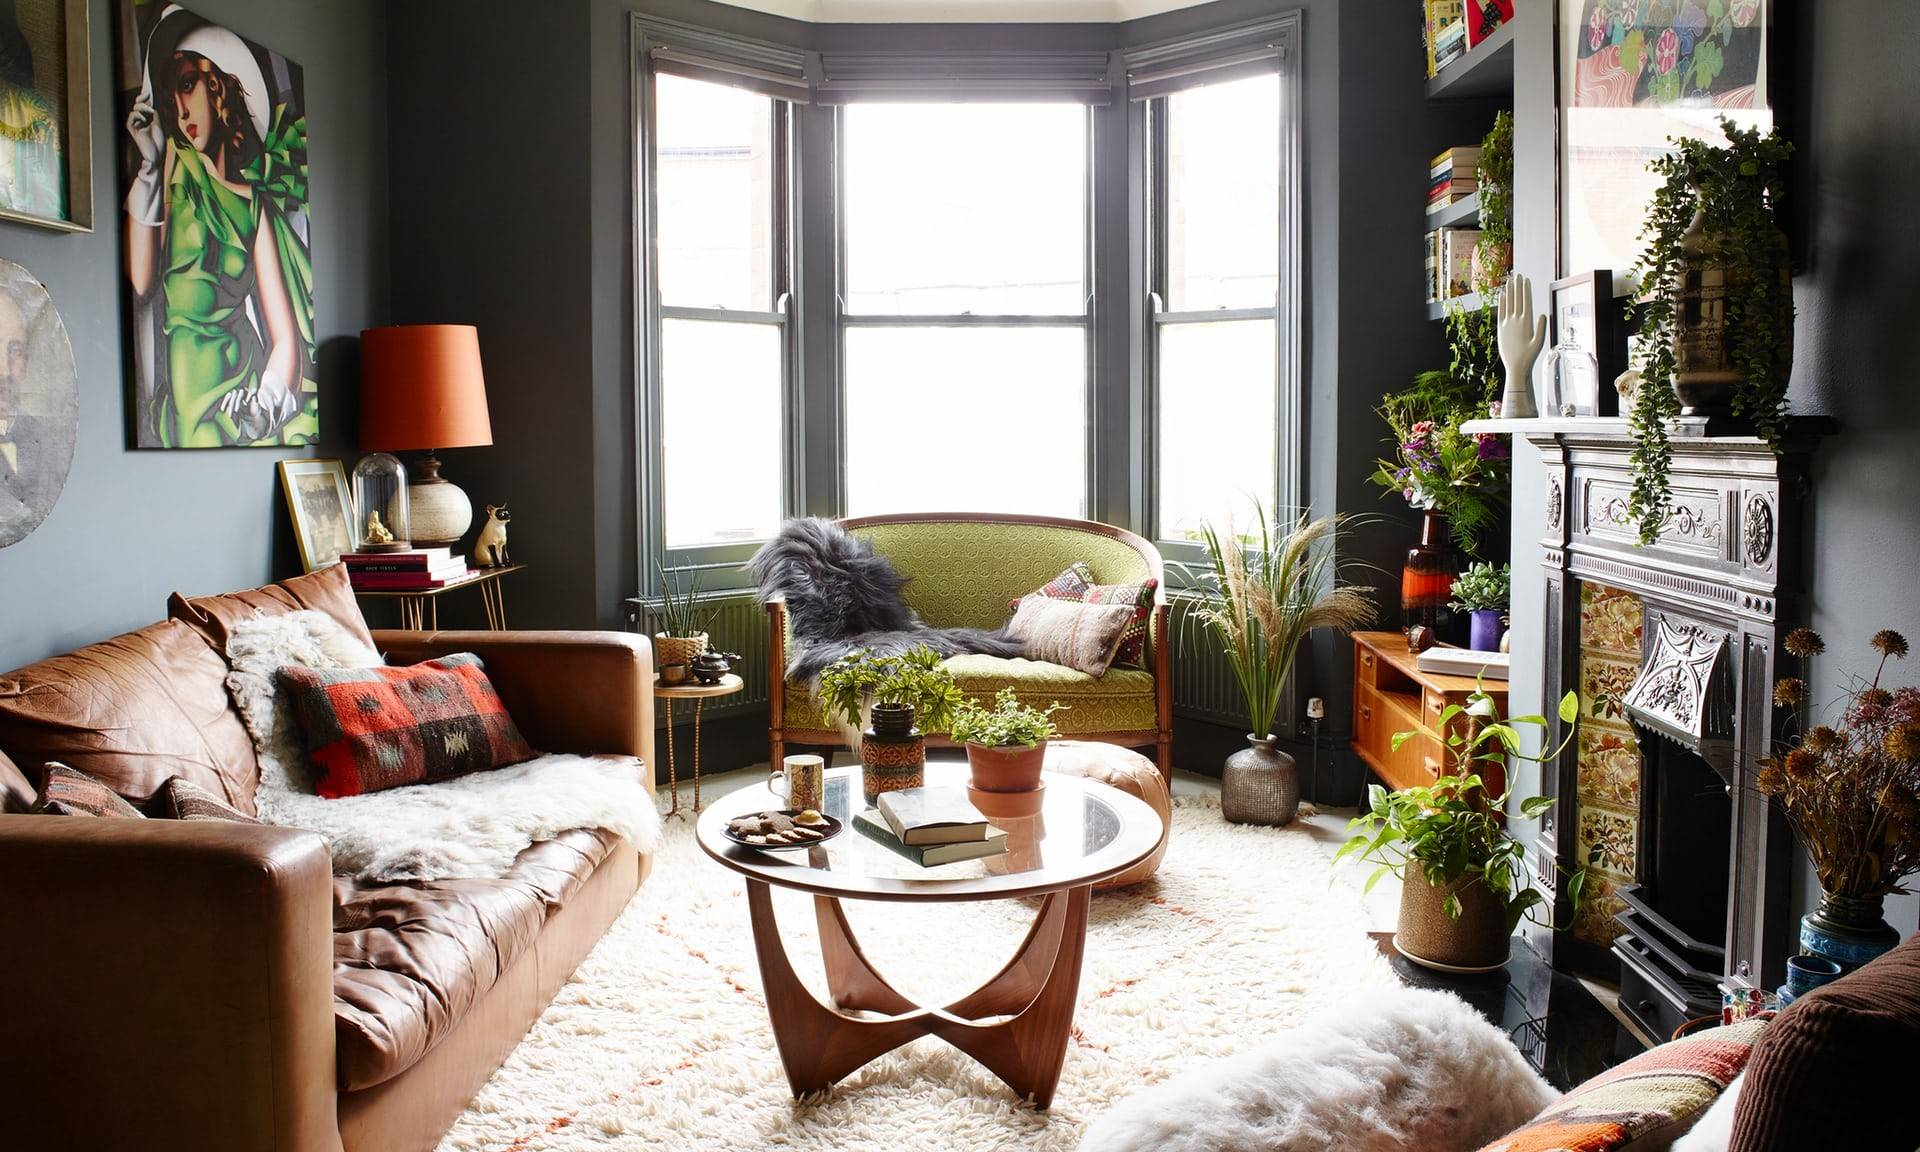 17 Comfy Eclectic Living Room Designs That Are All About The Chic